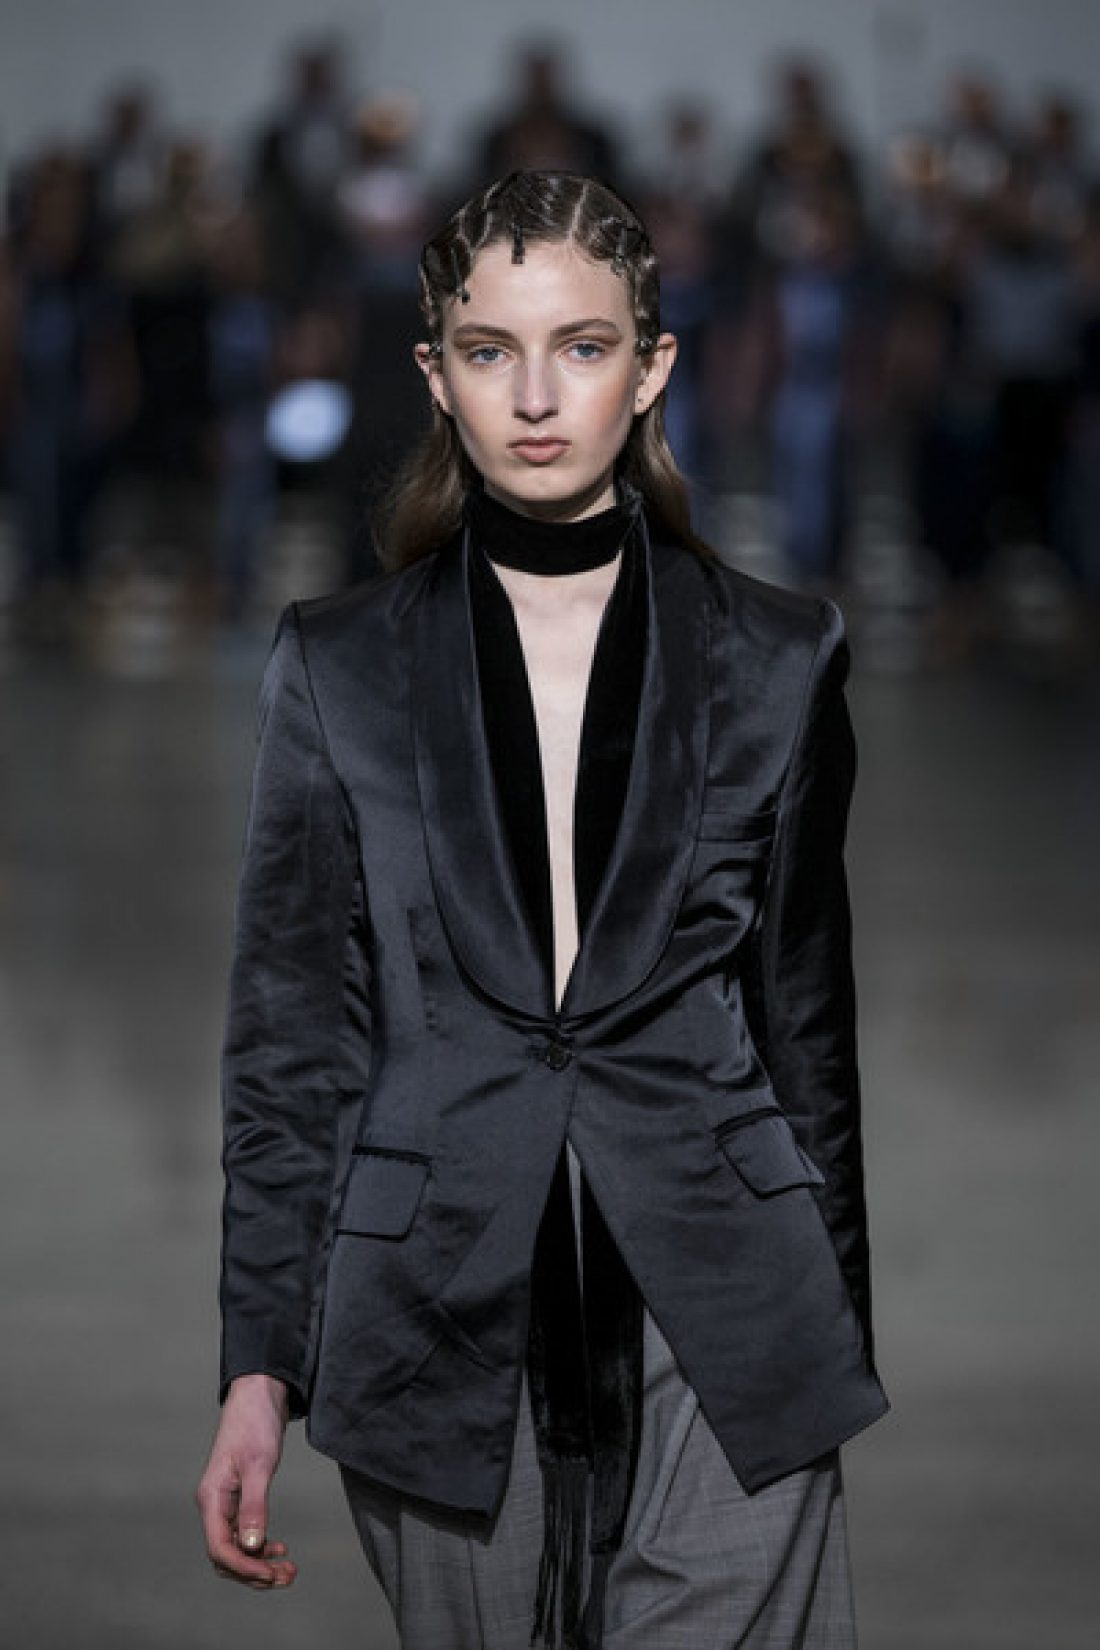 Polly, Penny, Maisie, Chloe for Hailwood Show at NZFW